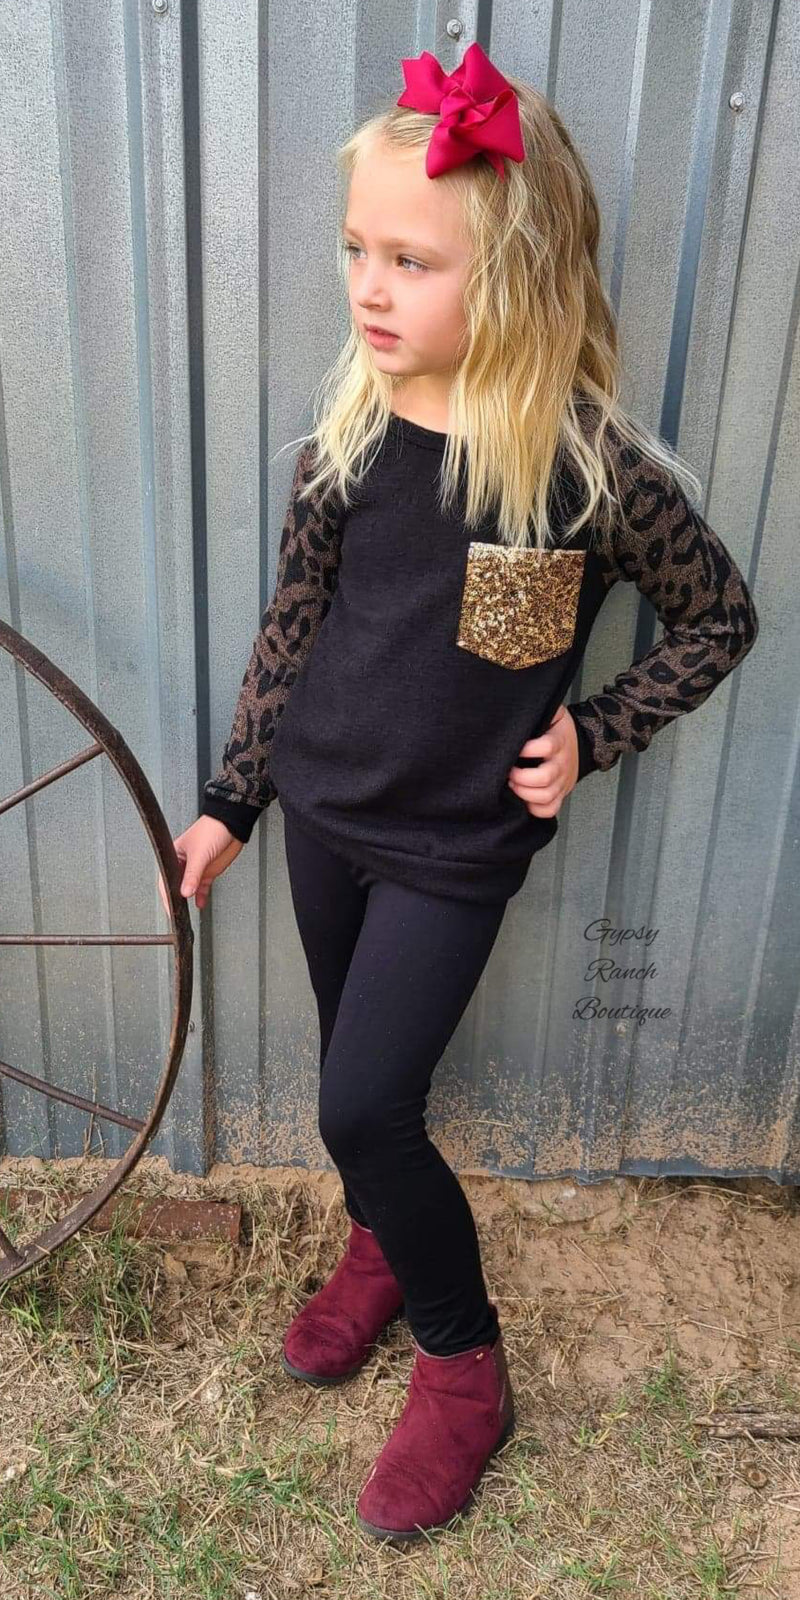 Mallory Leopard Top in Kids